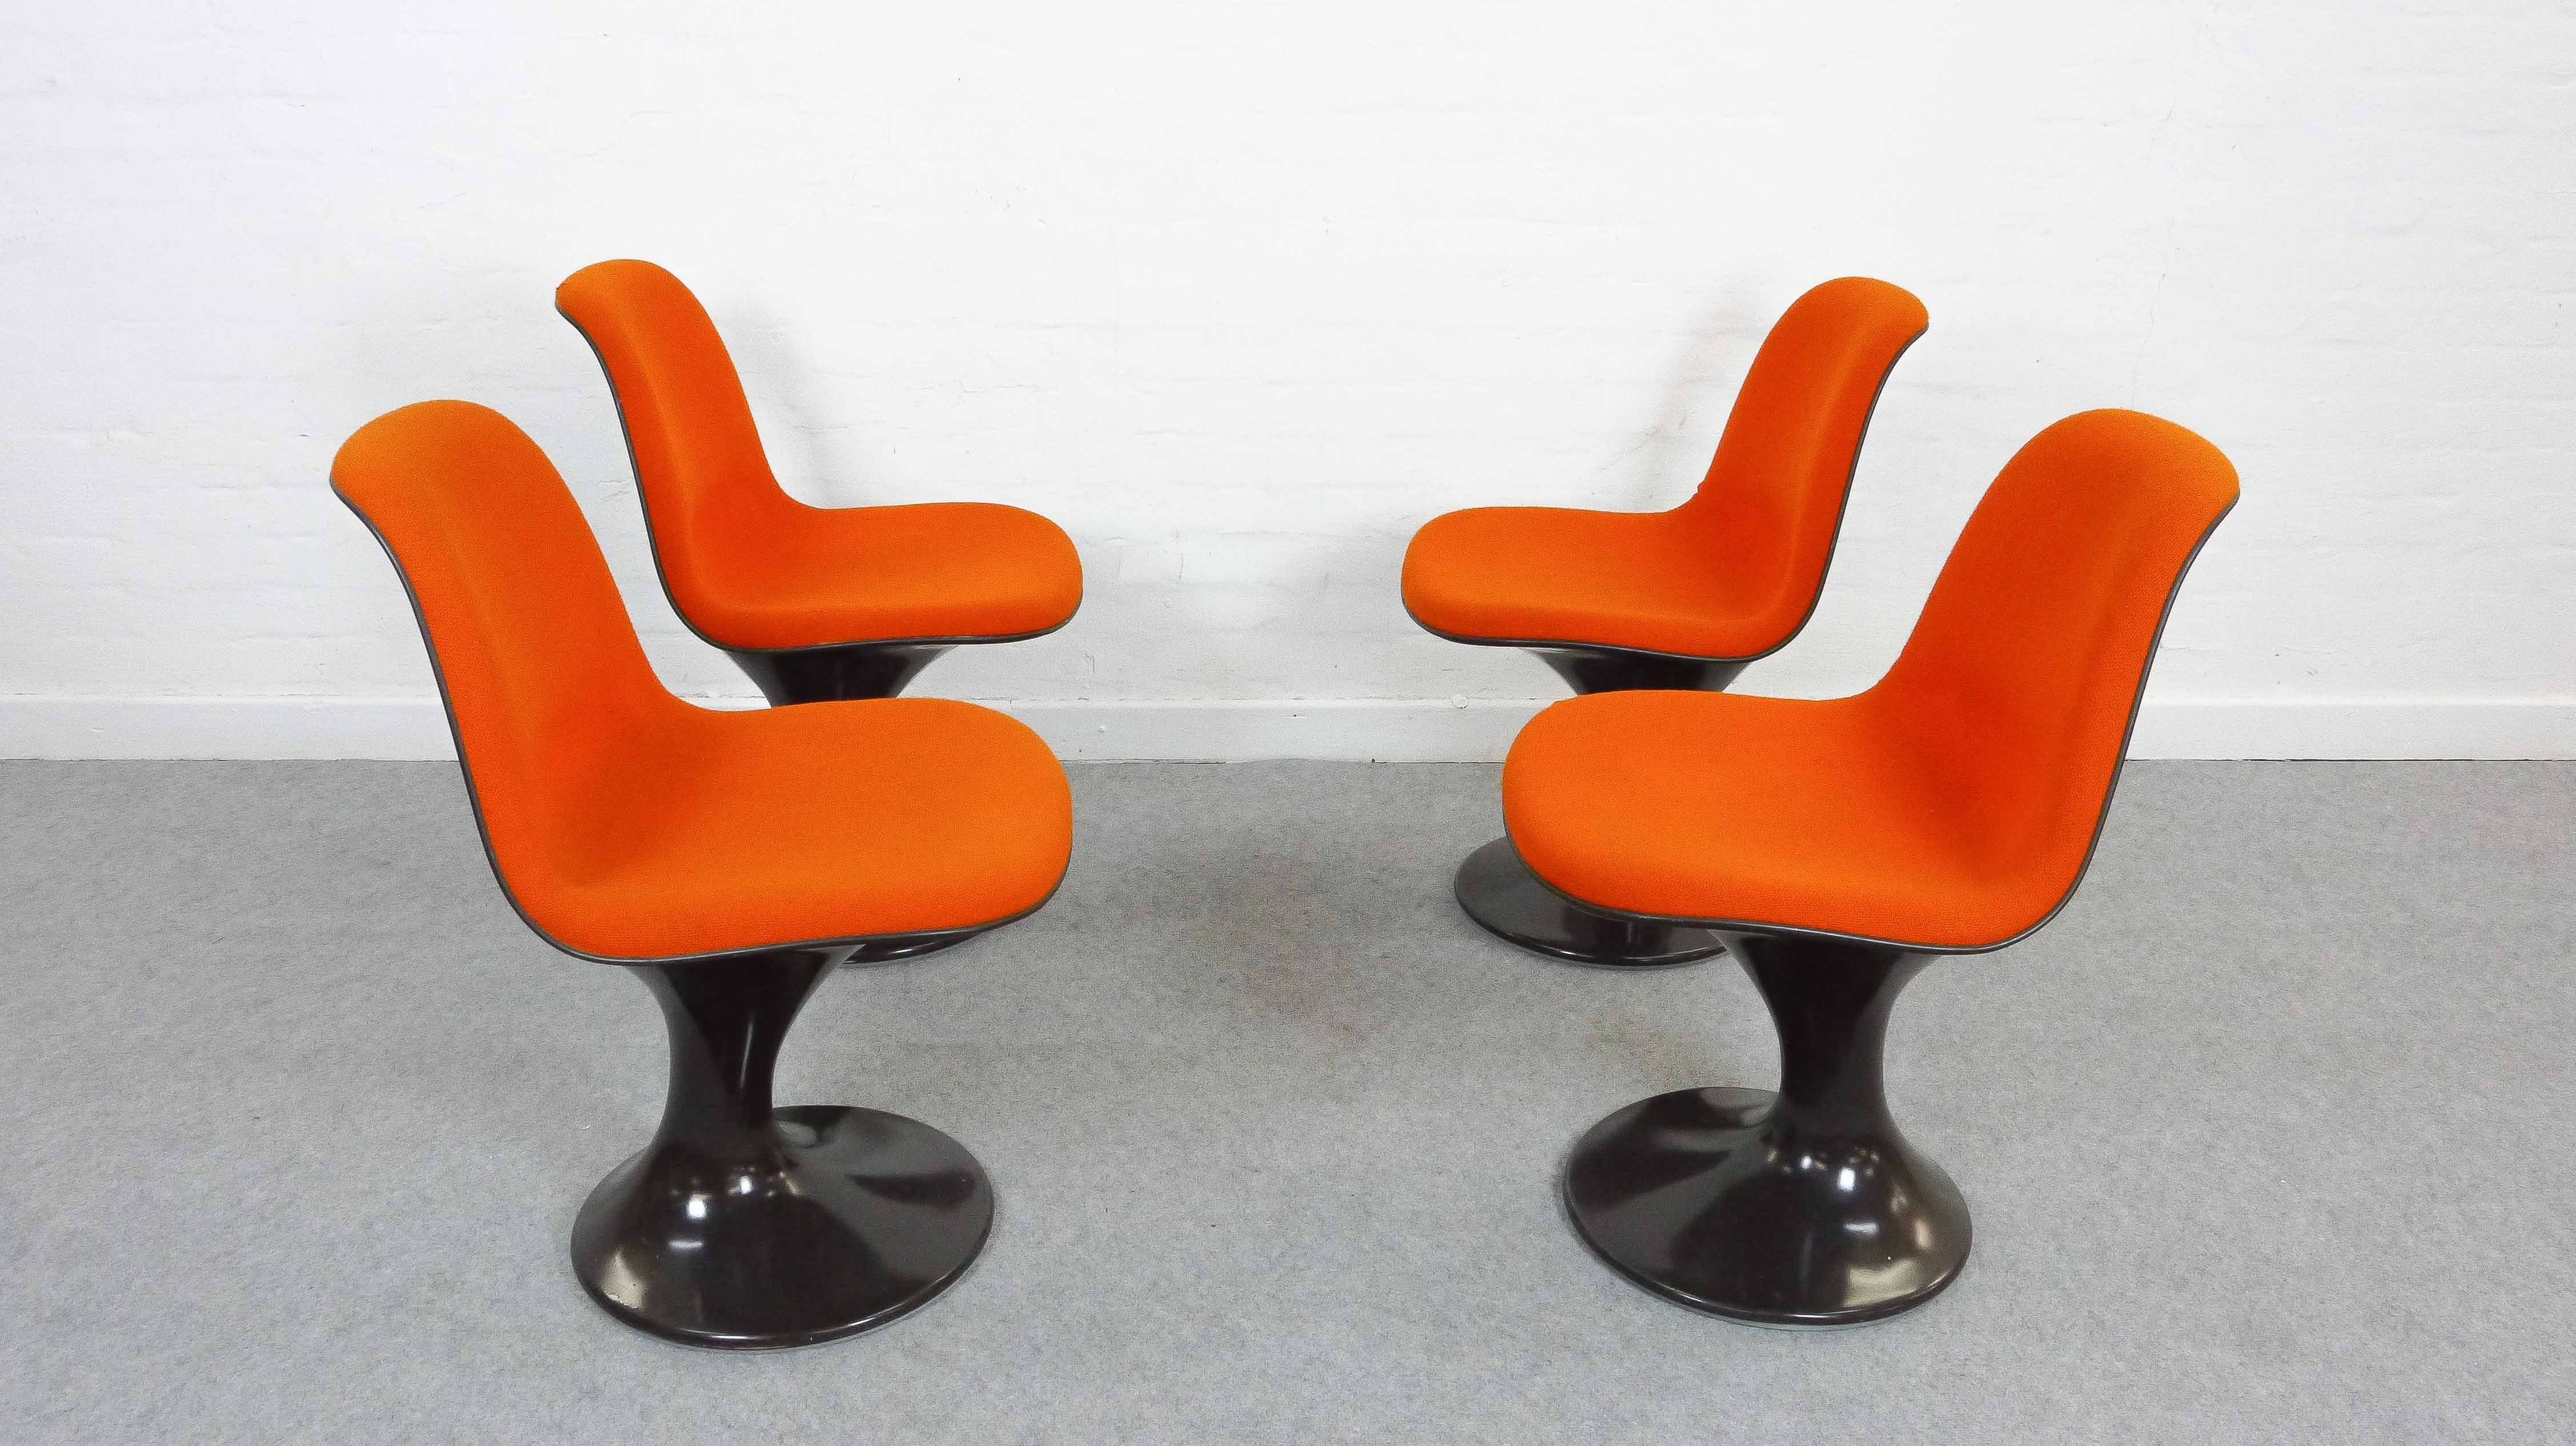 Space Age Furniture Set Of 4 Space Age Orbit Chairs By Herman Miller 1960s Design